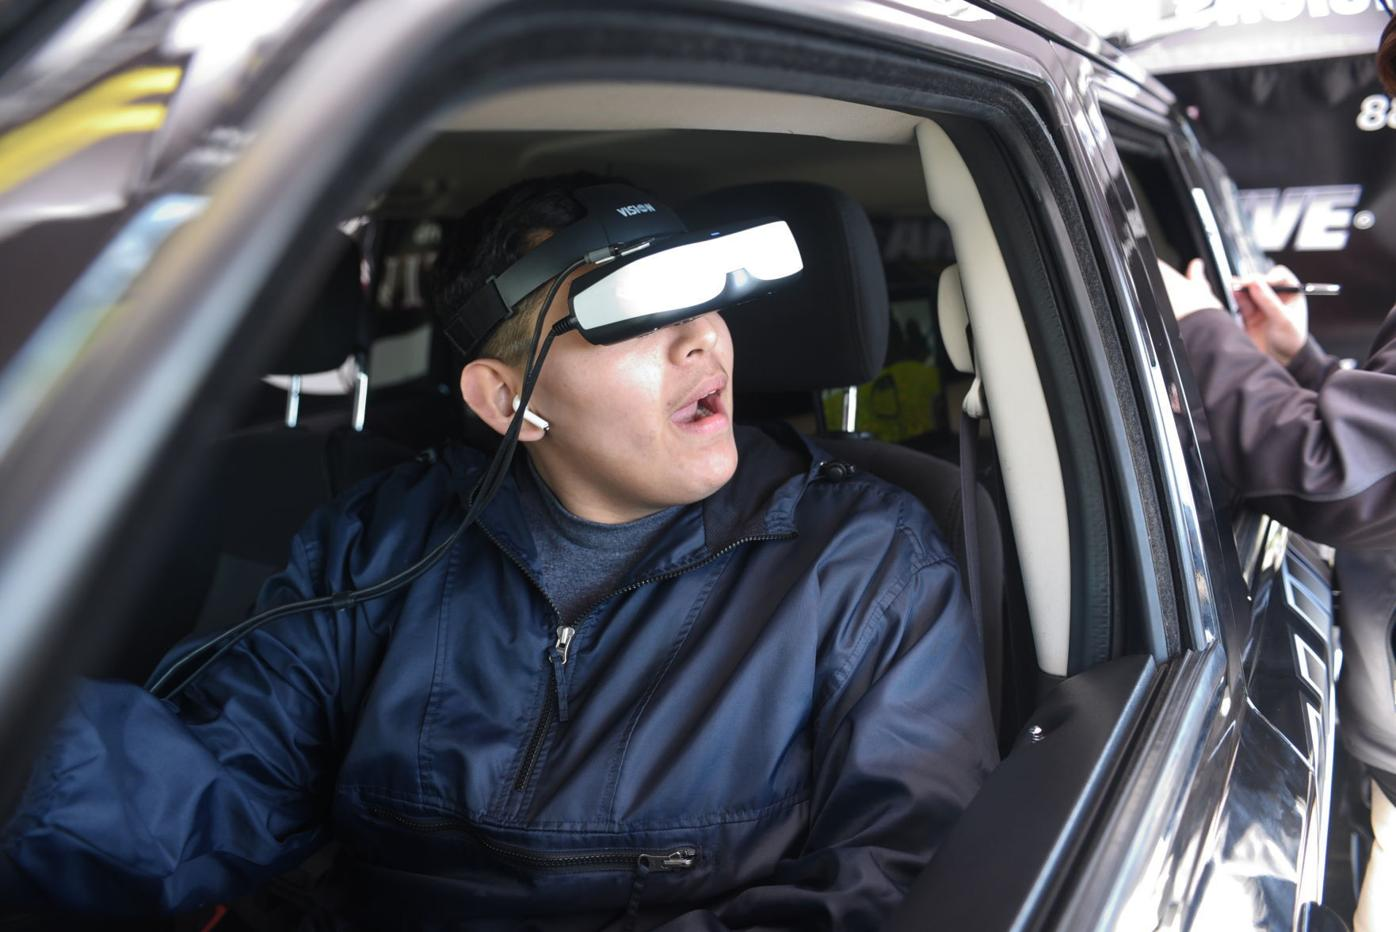 Drunk, drugged or distracted: Orcutt Academy students try to 'Arrive Alive' in educational driving simulator